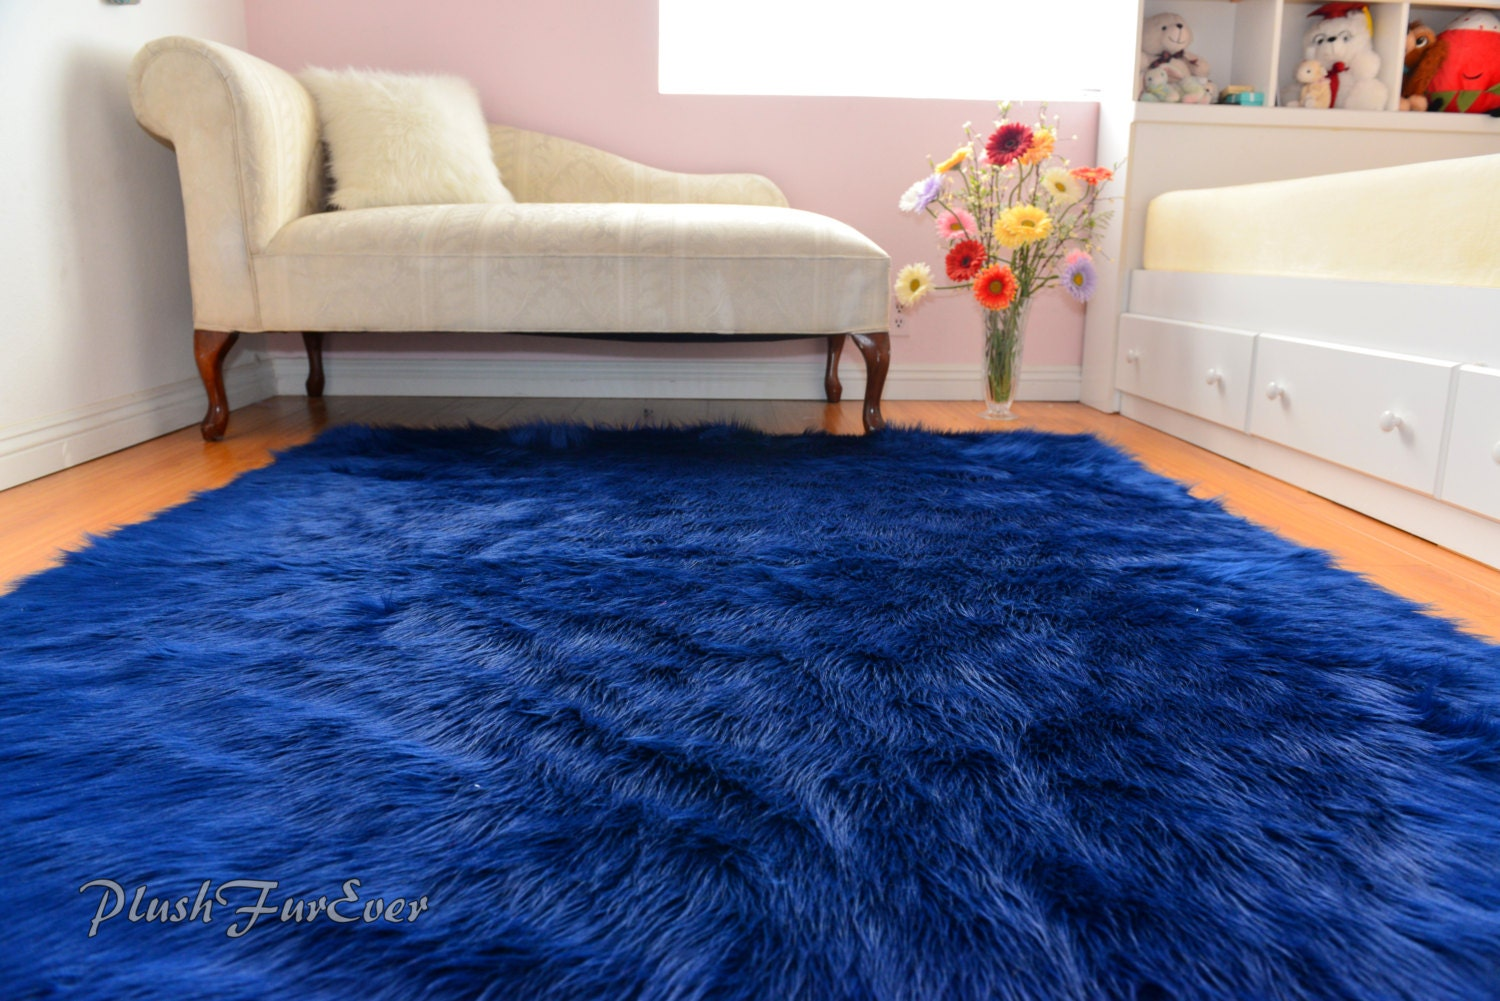 blue cleaners solid rug ideas navy round area pattern rugs designs